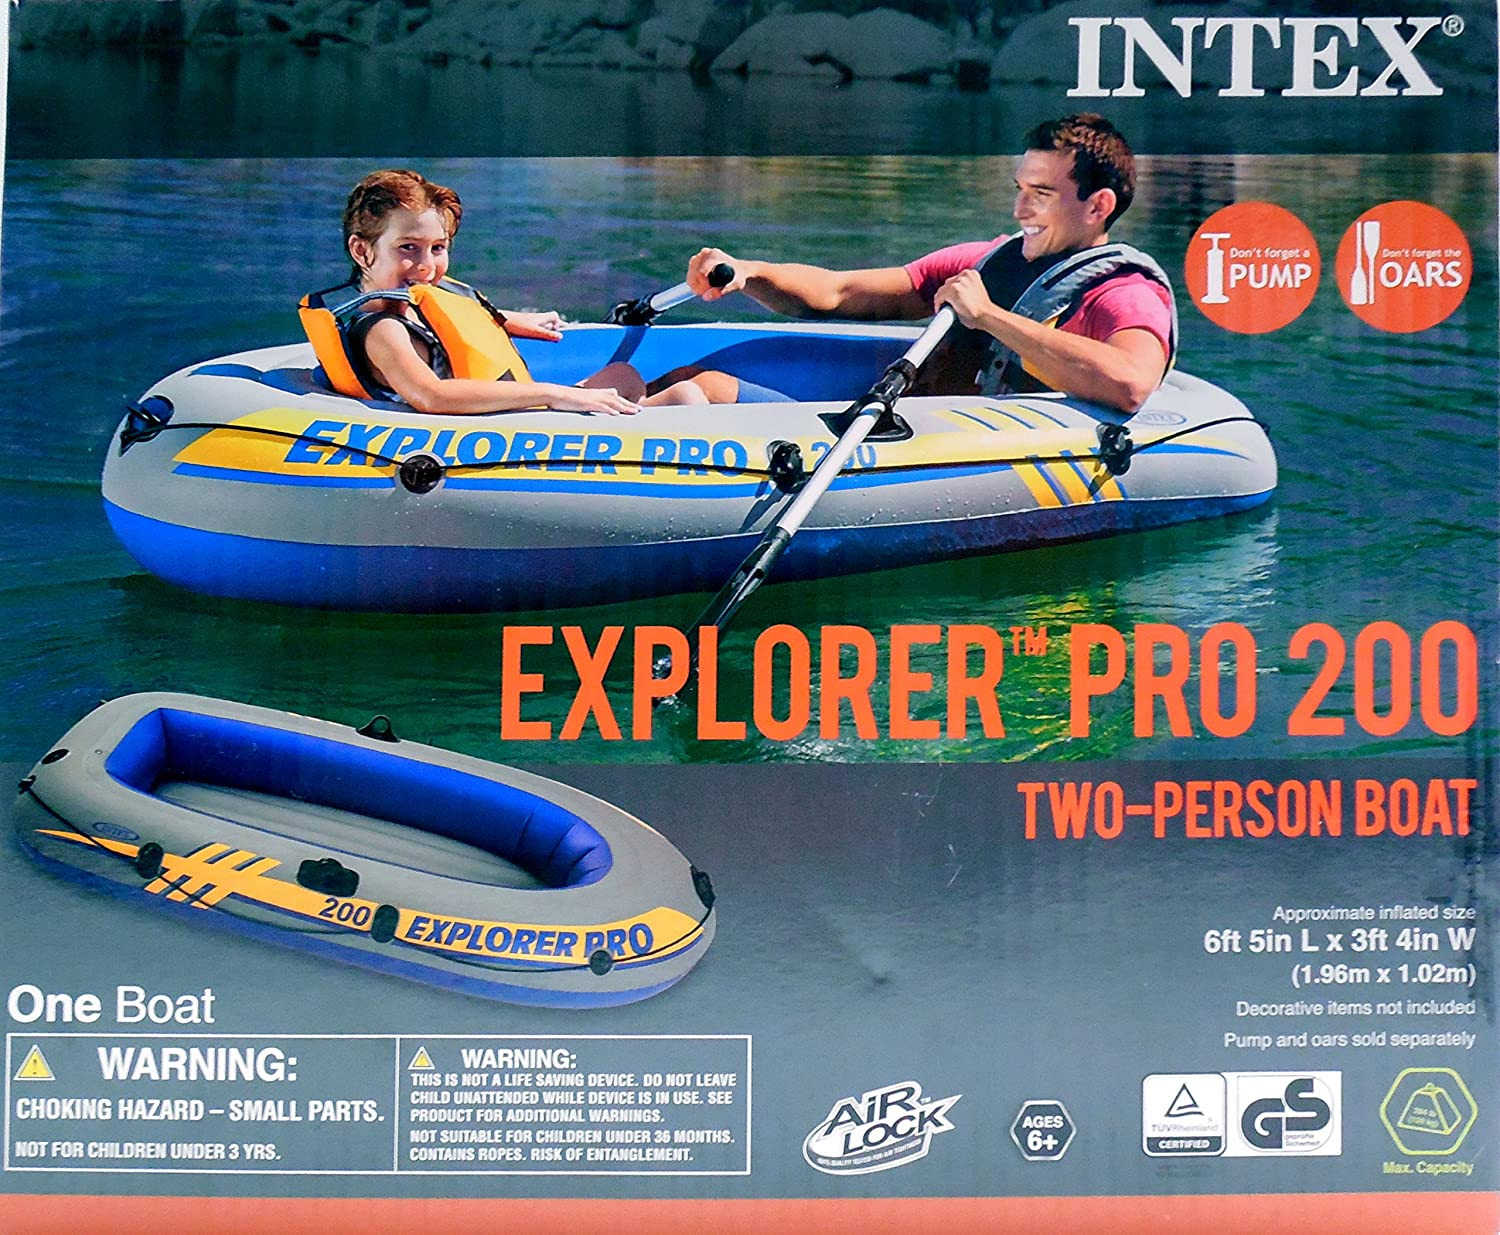 Amazon.com: Intex Explorer Pro 200 Dos Persona Barco – Barca ...